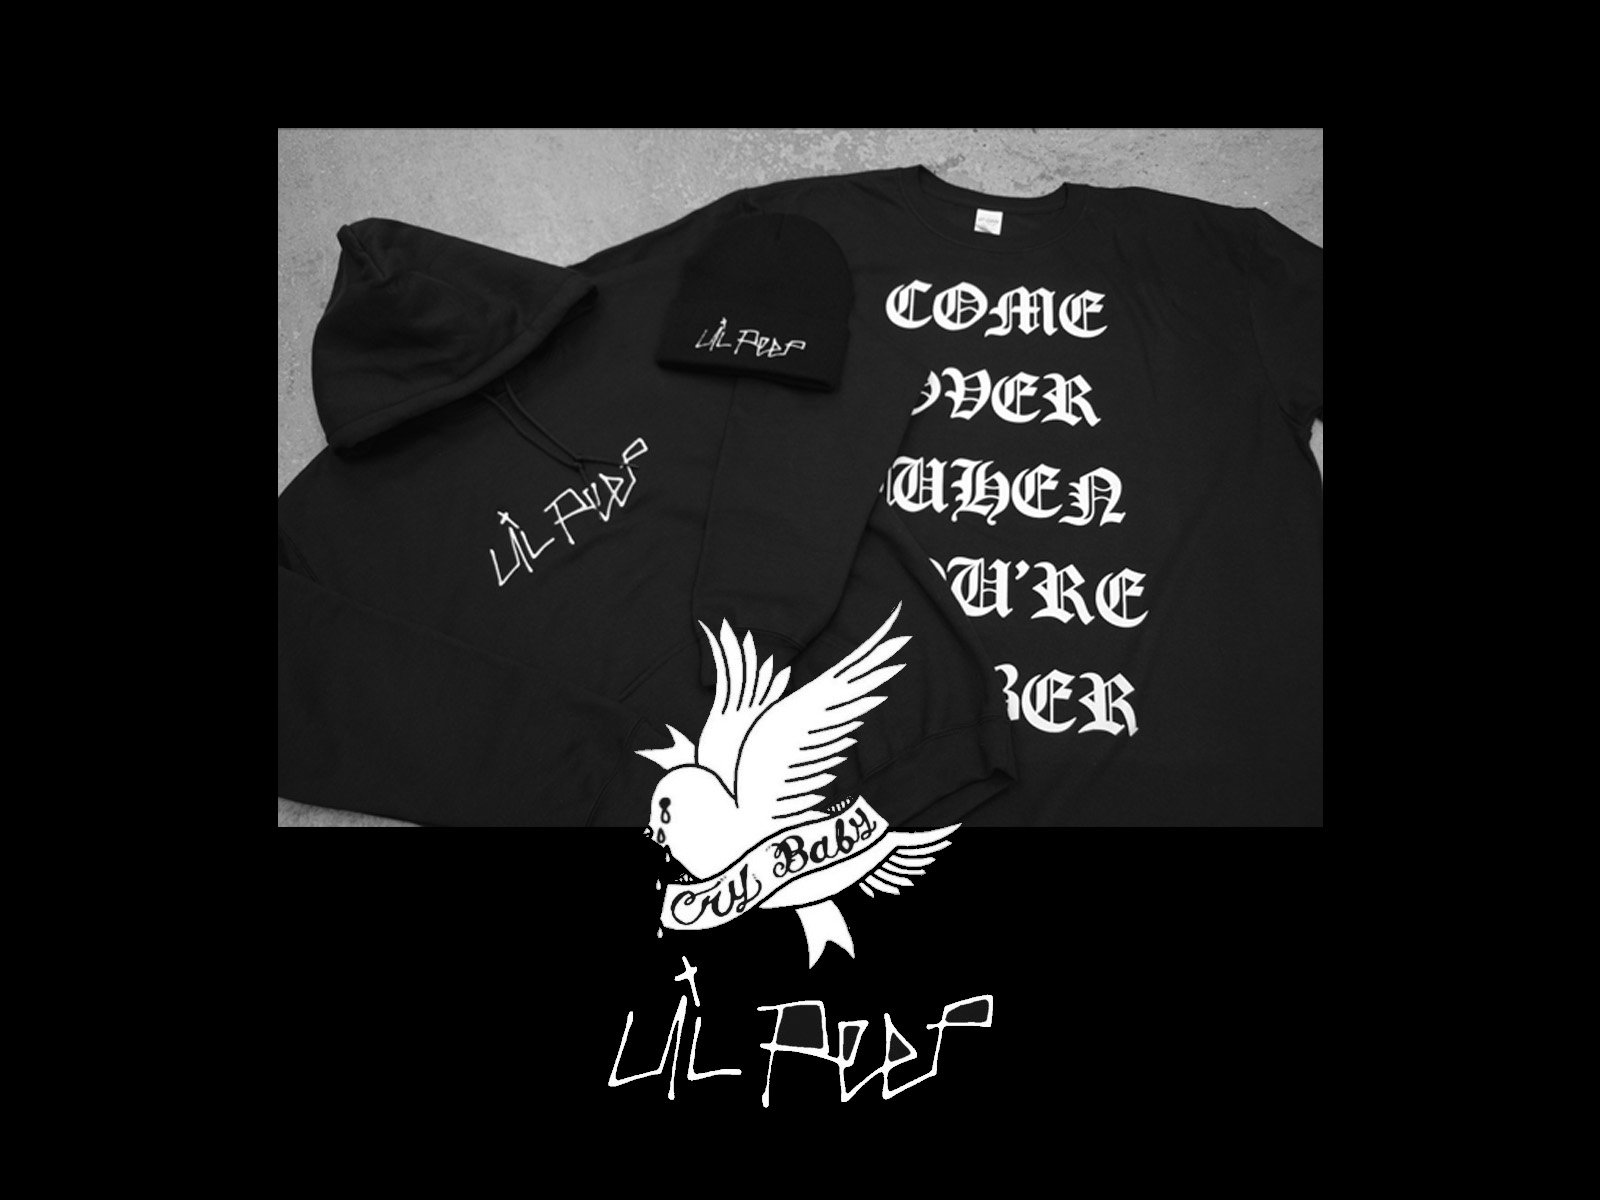 LIL PEEP – Official Item